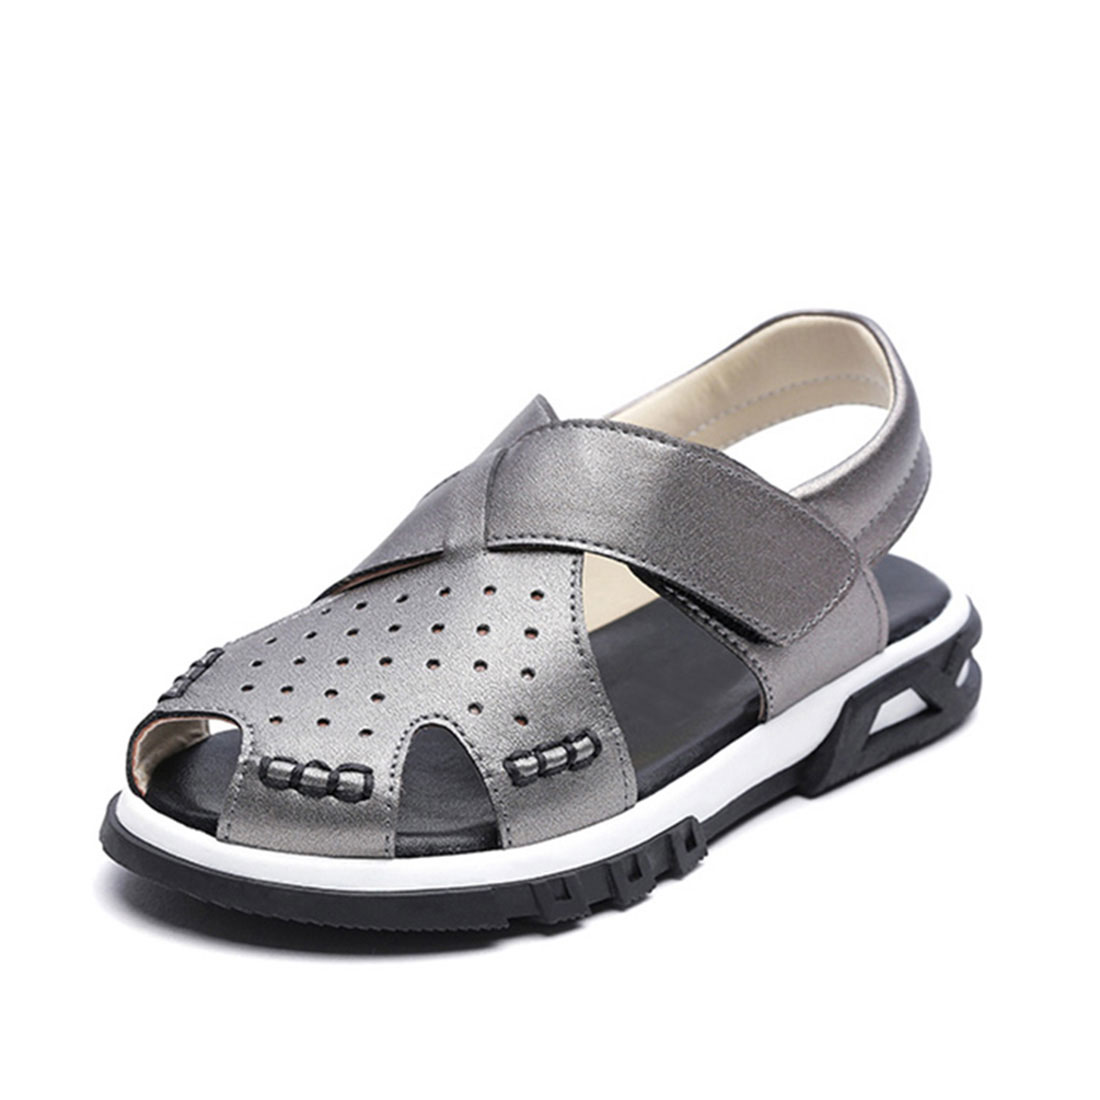 Metallic leather gray flat open toe cool 2018 summer boy kids sandals shoes